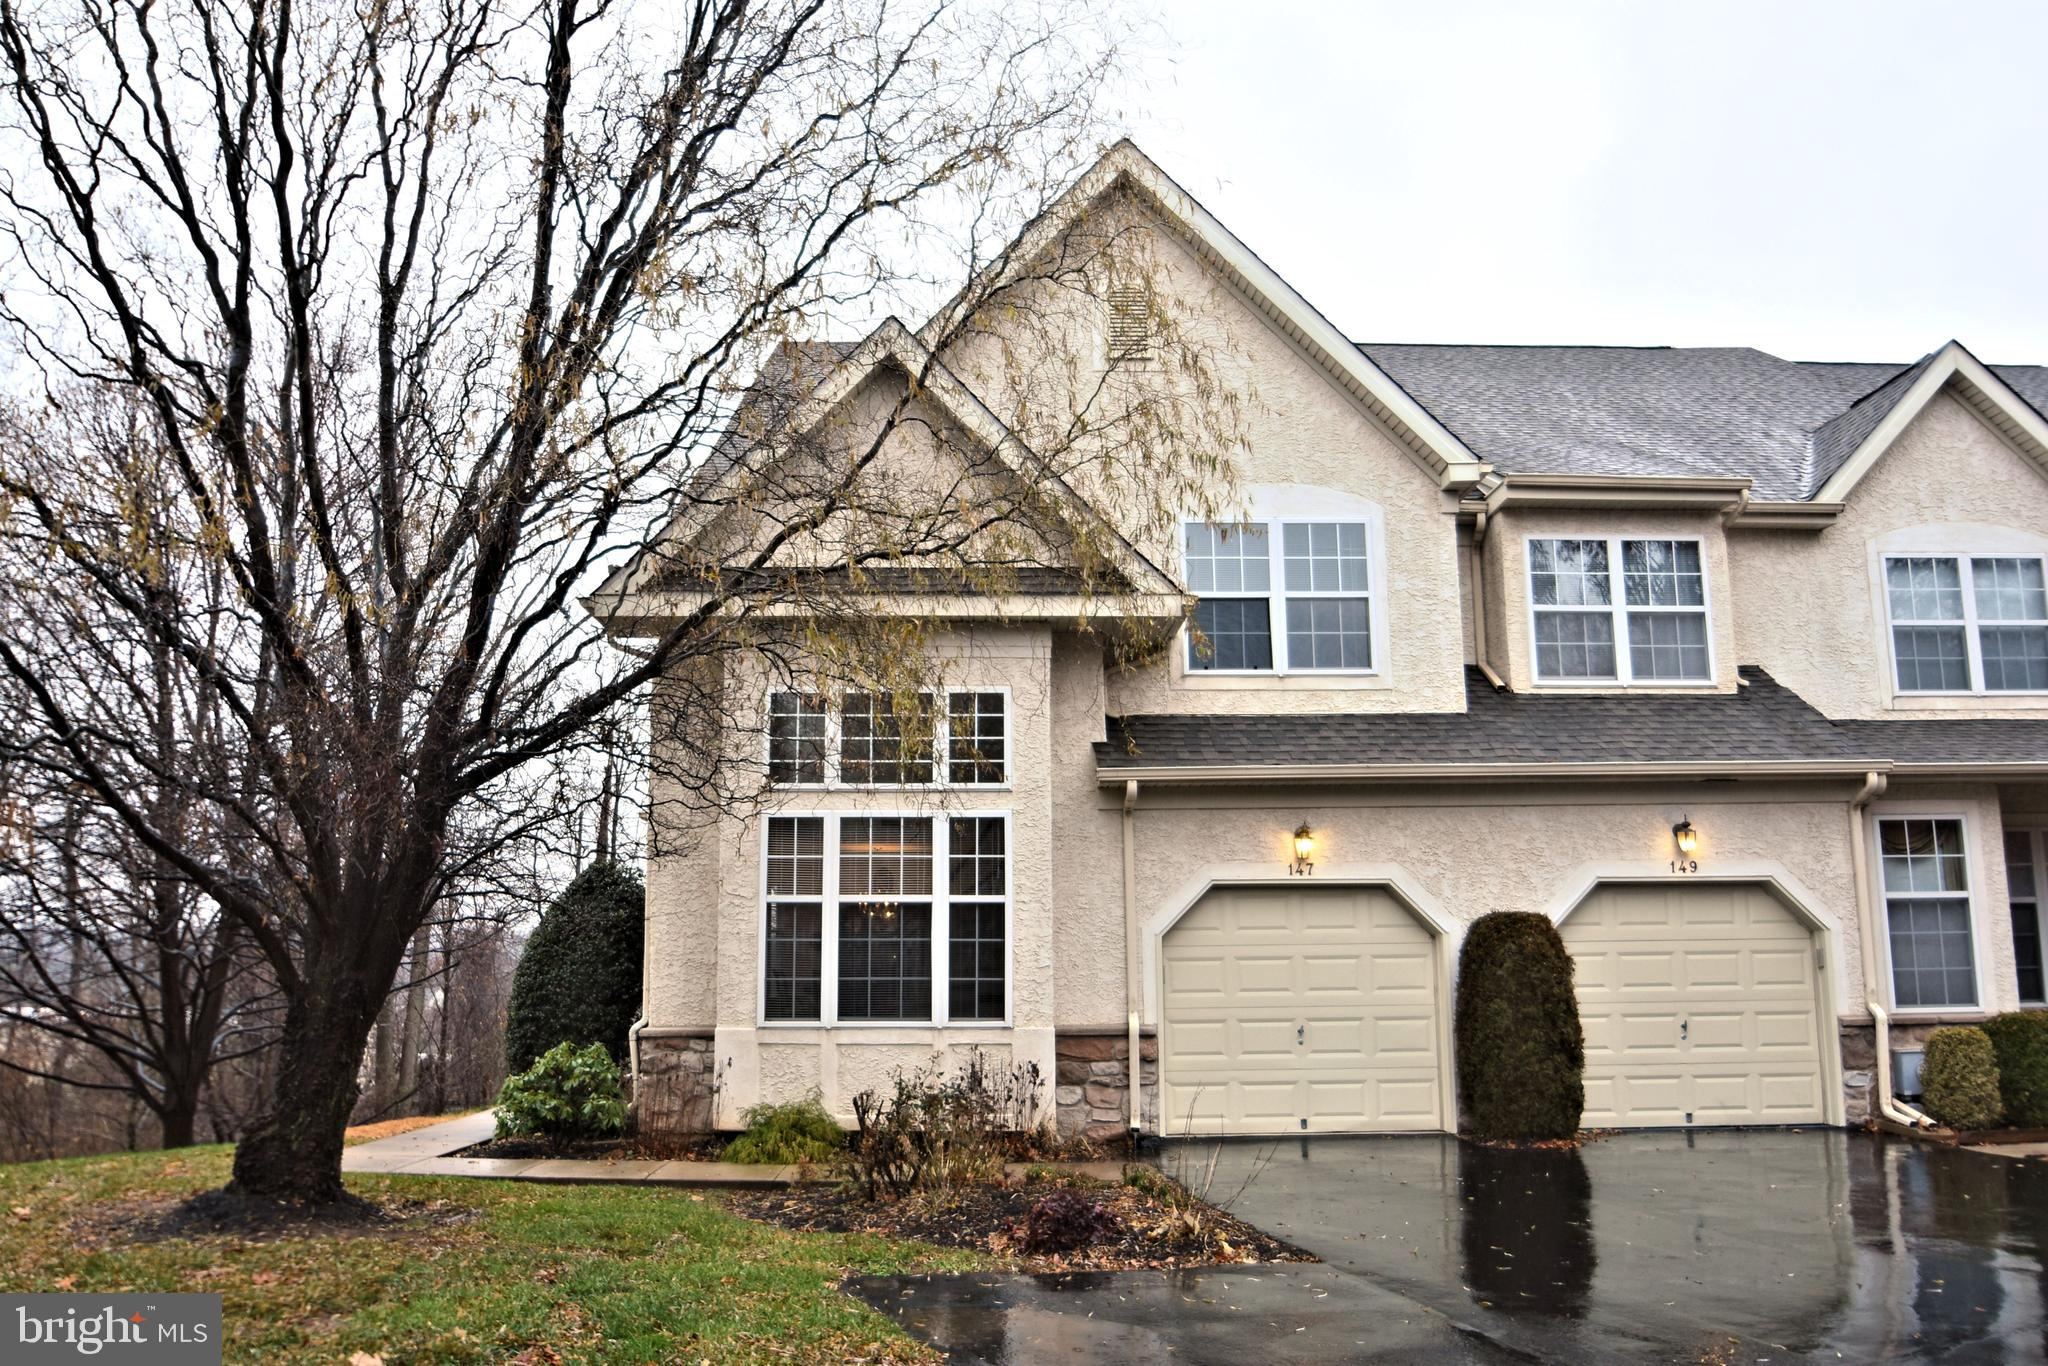 147 GREEN VALLEY CIRCLE, DRESHER, PA 19025